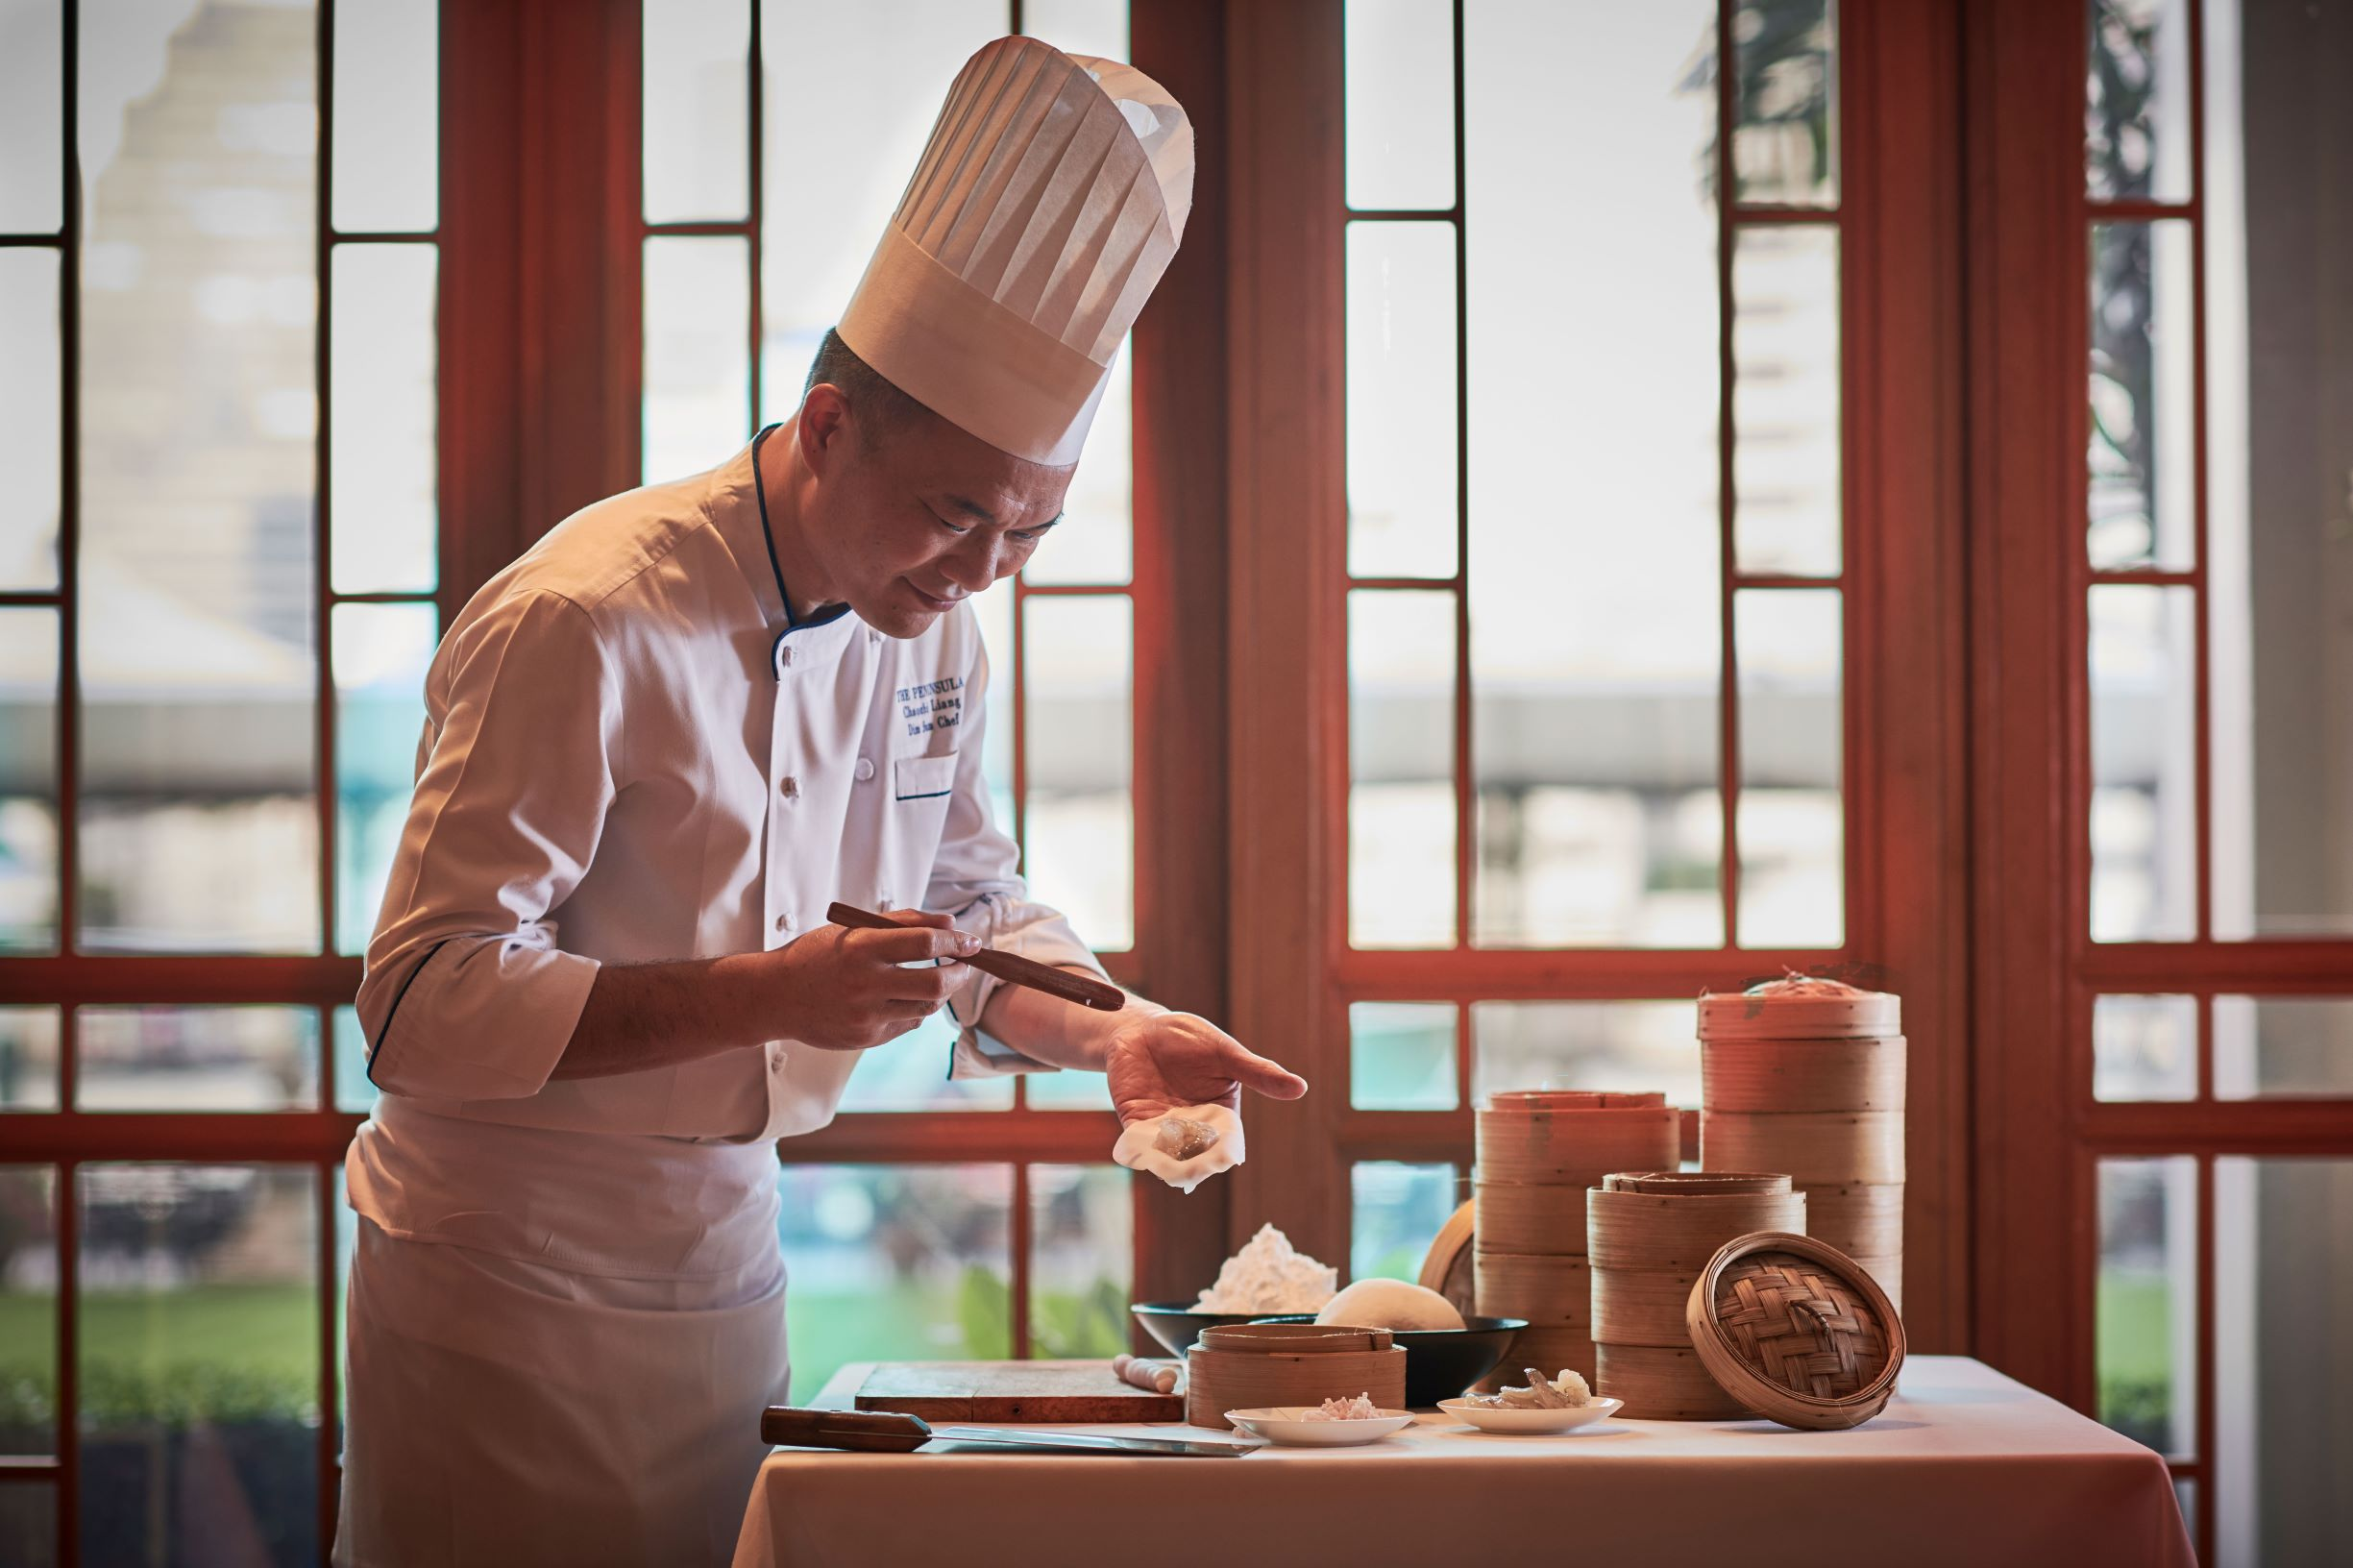 Chef Yau makes Hagao of River Café & Terrace at The Peninsula Bangkok